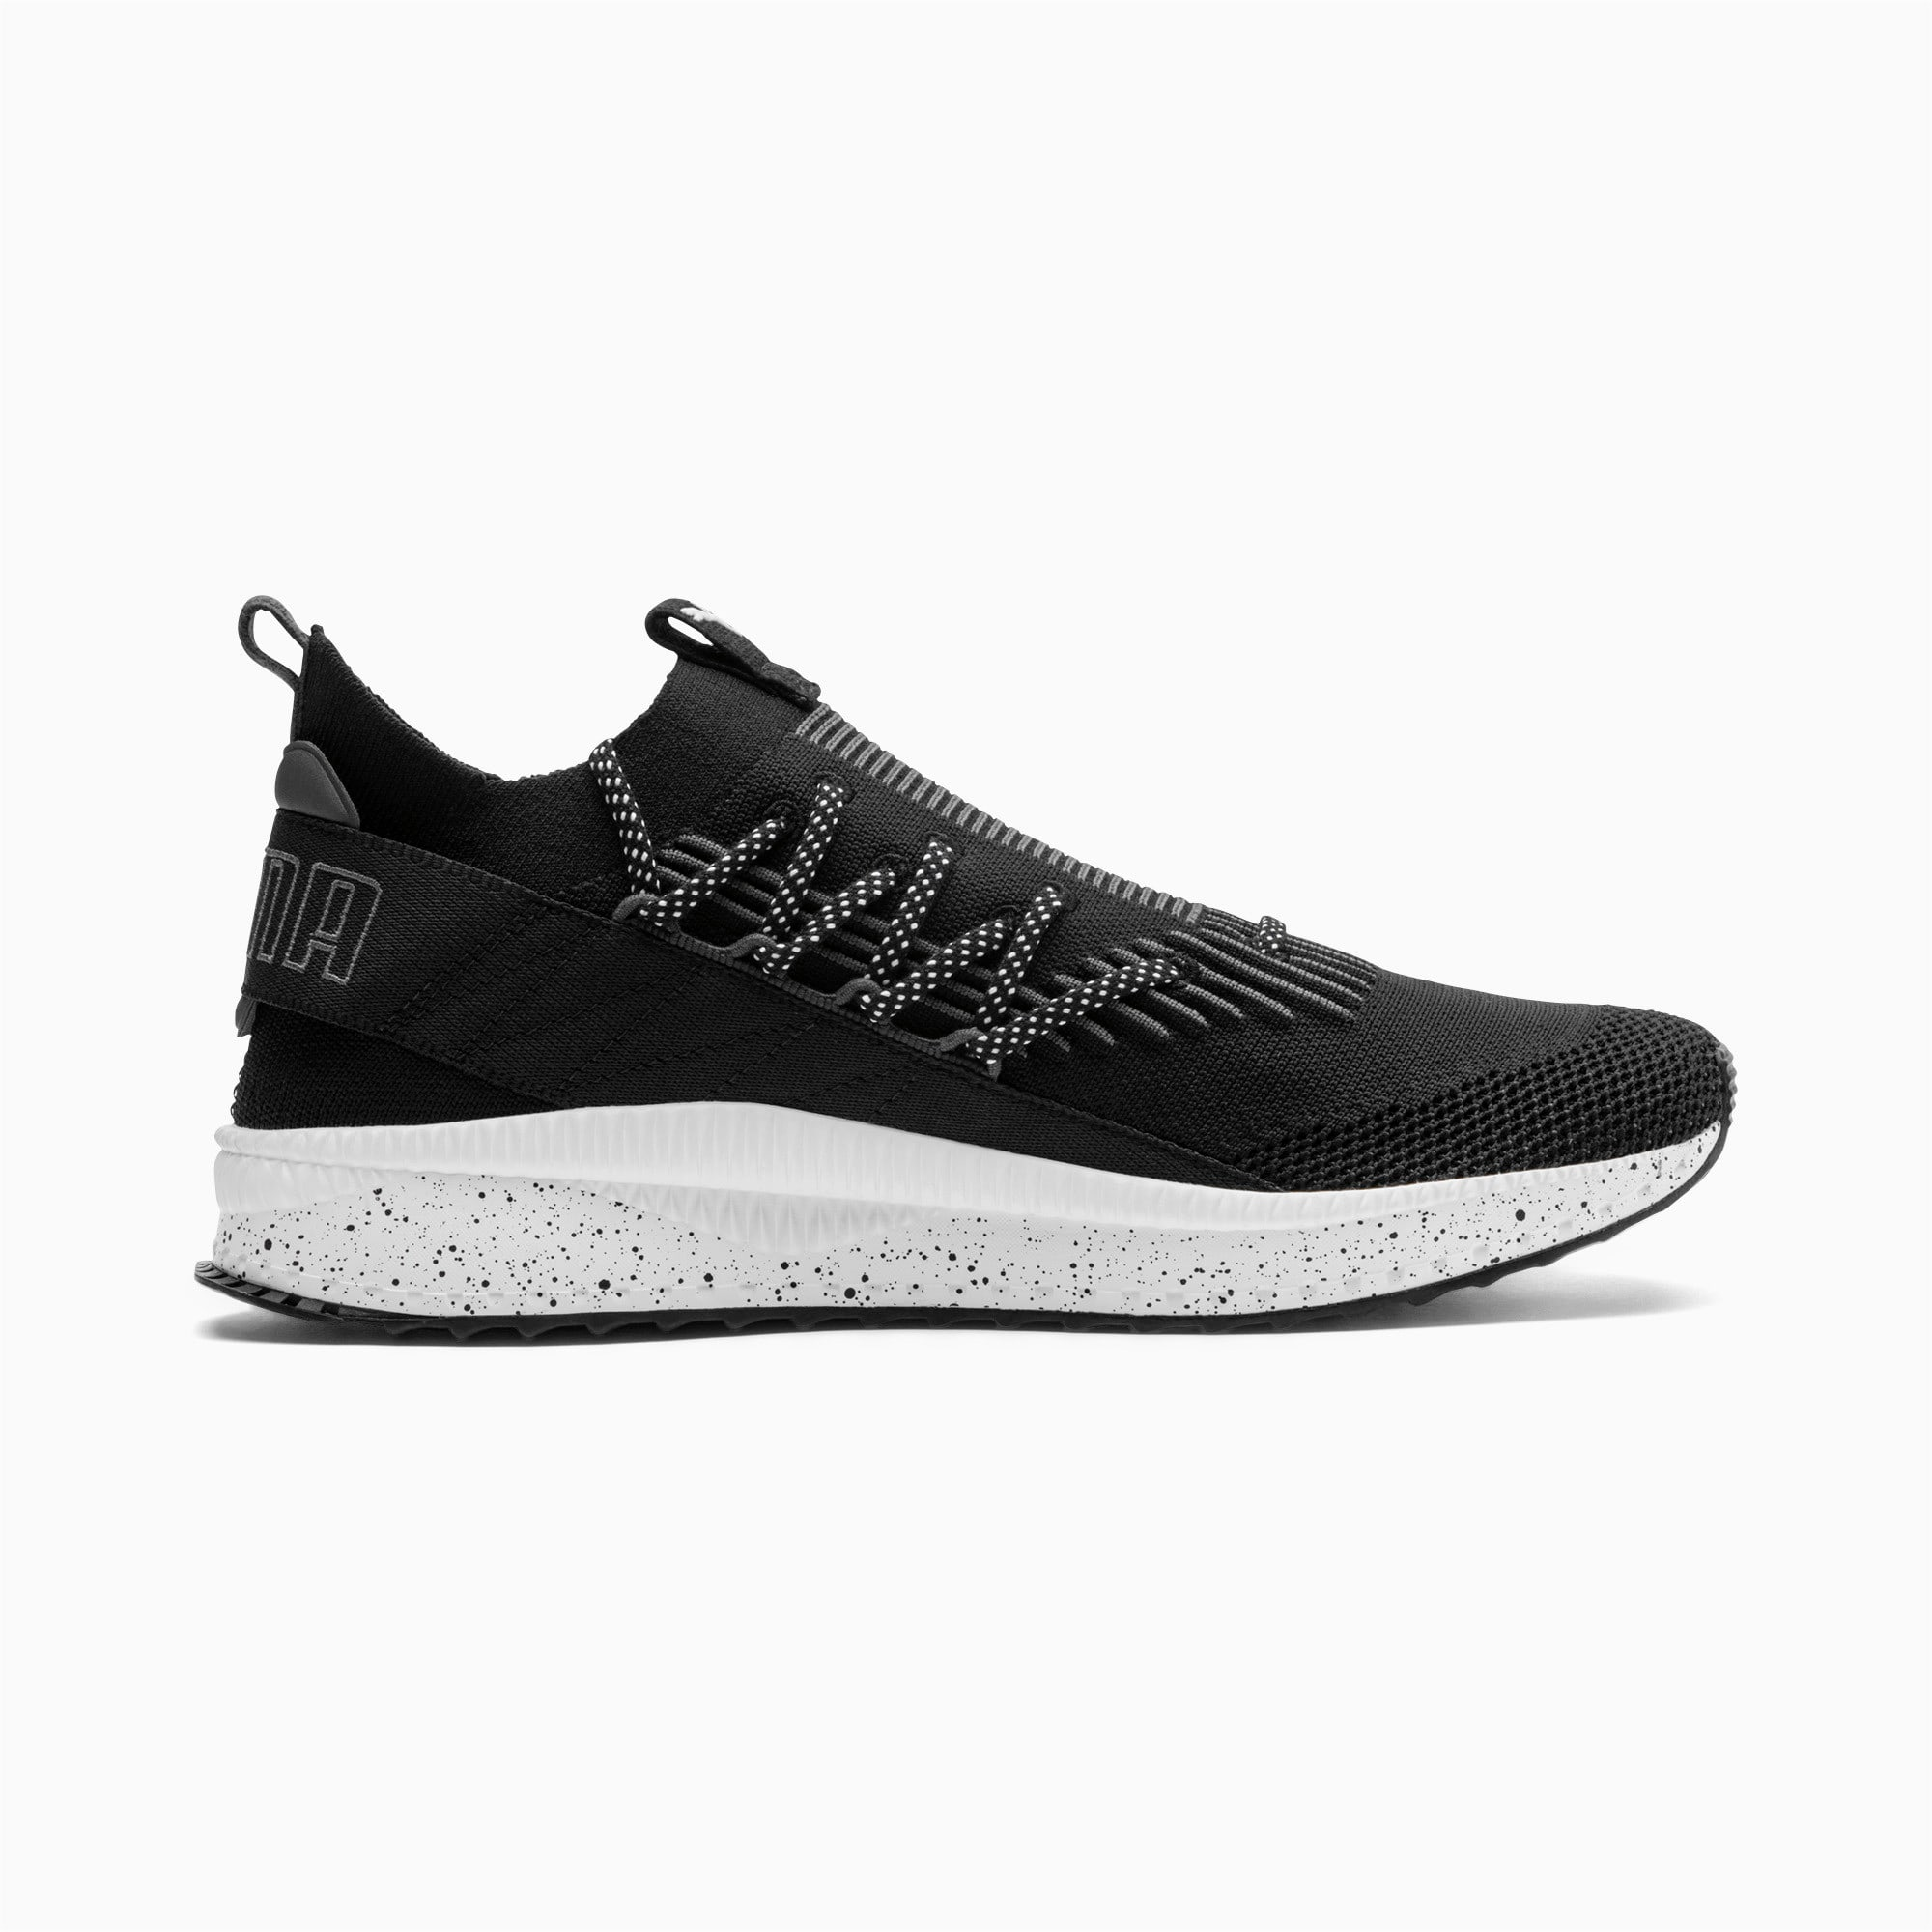 Thumbnail 5 of TSUGI Kai Jun Speckle evoKNIT Sneaker, Puma Black-Asphalt, medium